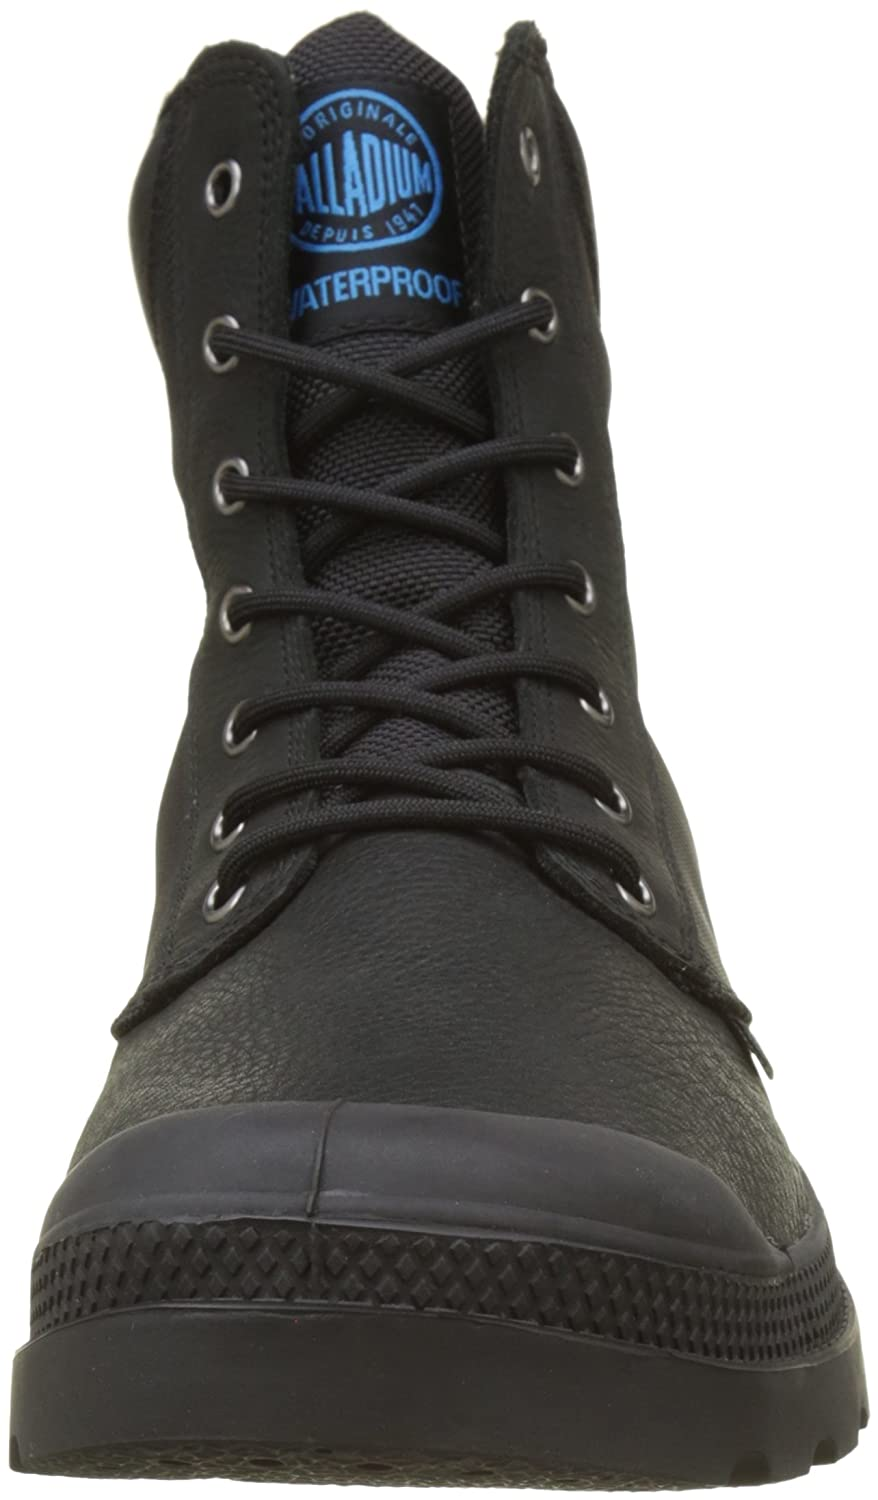 Amazon.com: Palladium Men's Pampa Sport Cuff Wpn Rain Boot: Palladium: Shoes